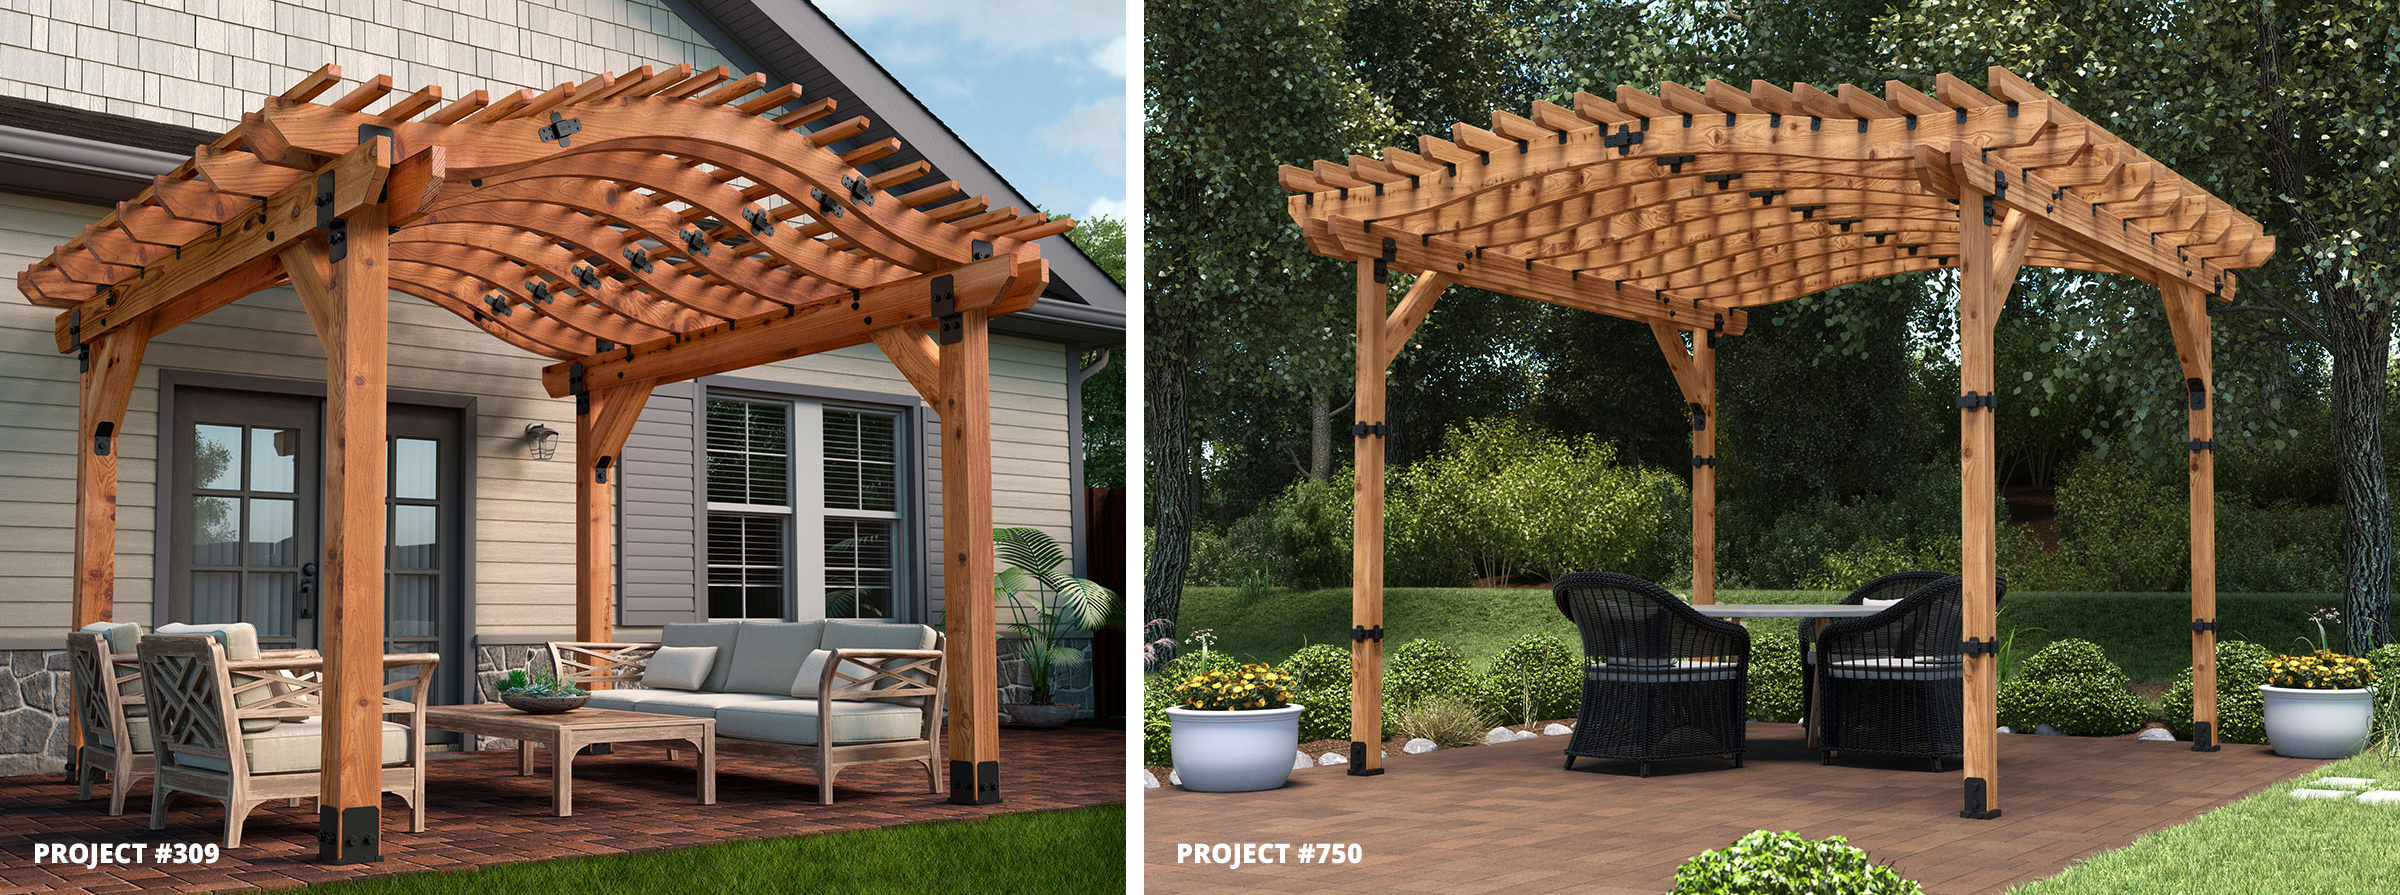 Project Plans Curved Rafter Appeal Pergolas With Curves